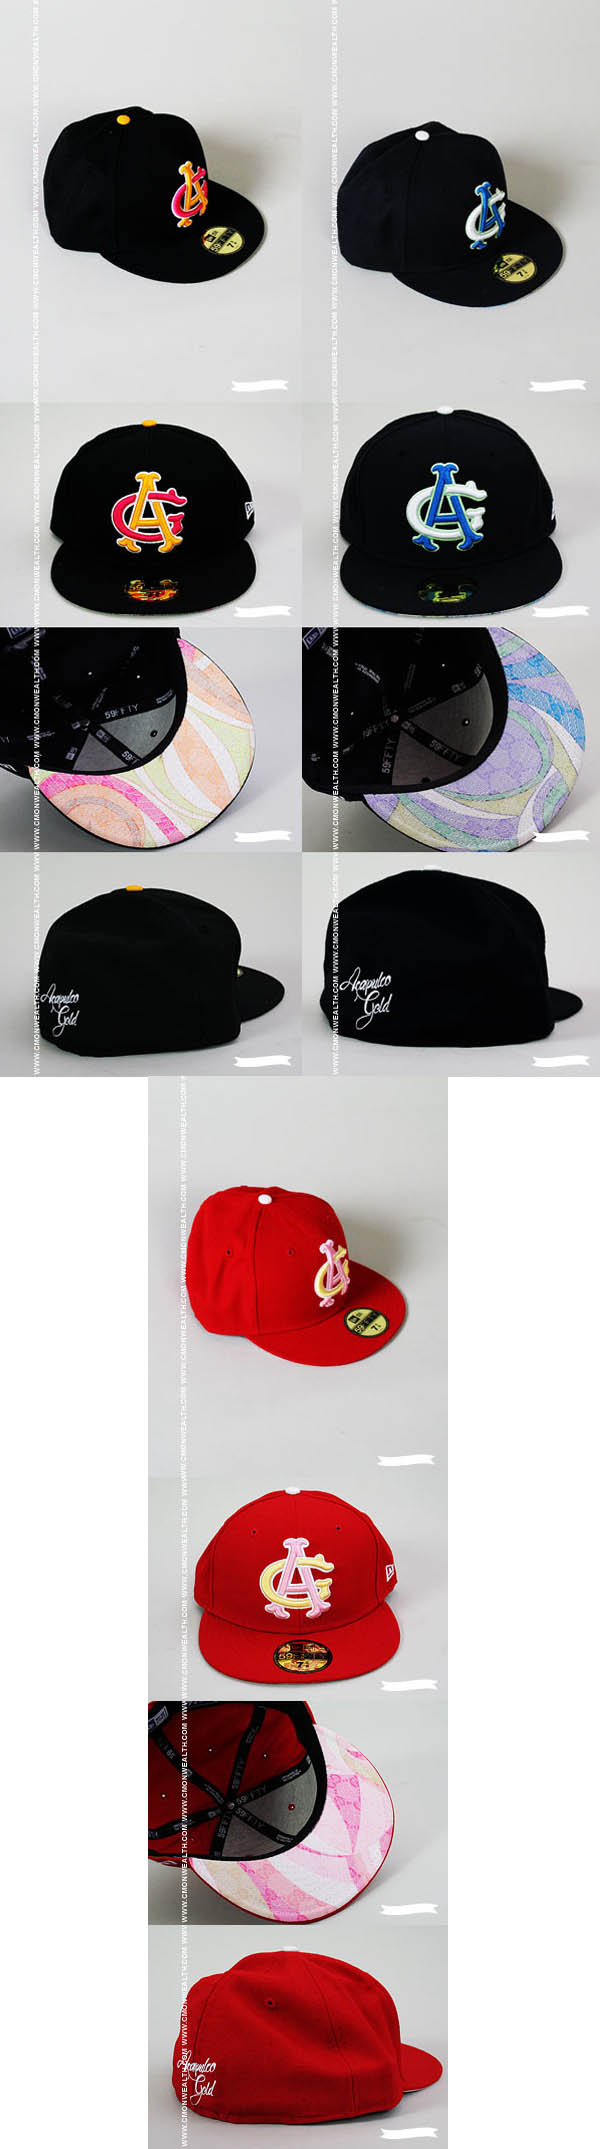 New Acapulco Gold New Eras